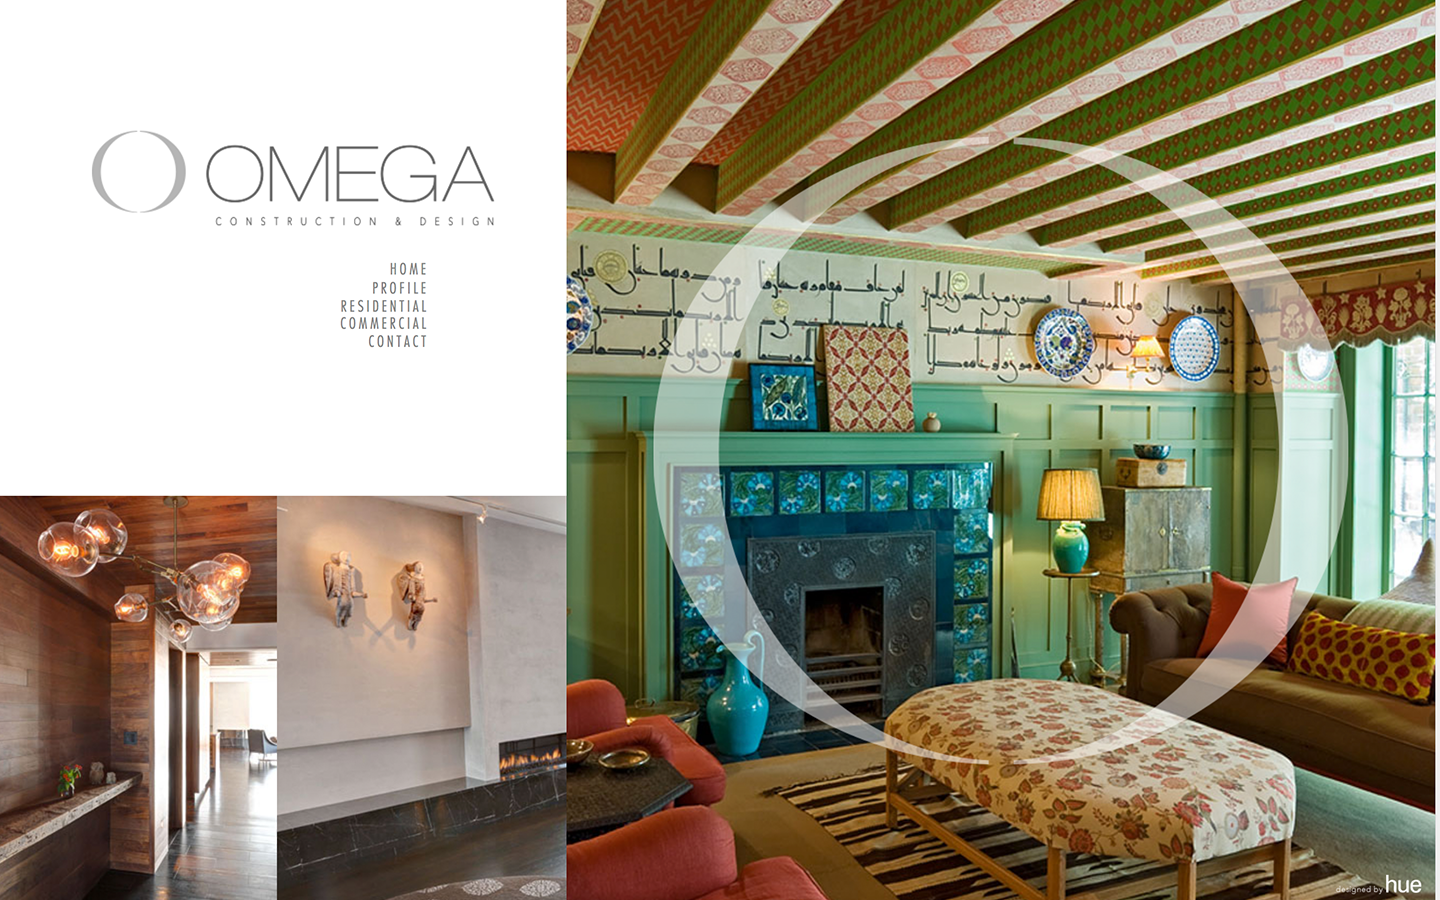 Omega Construction and Design